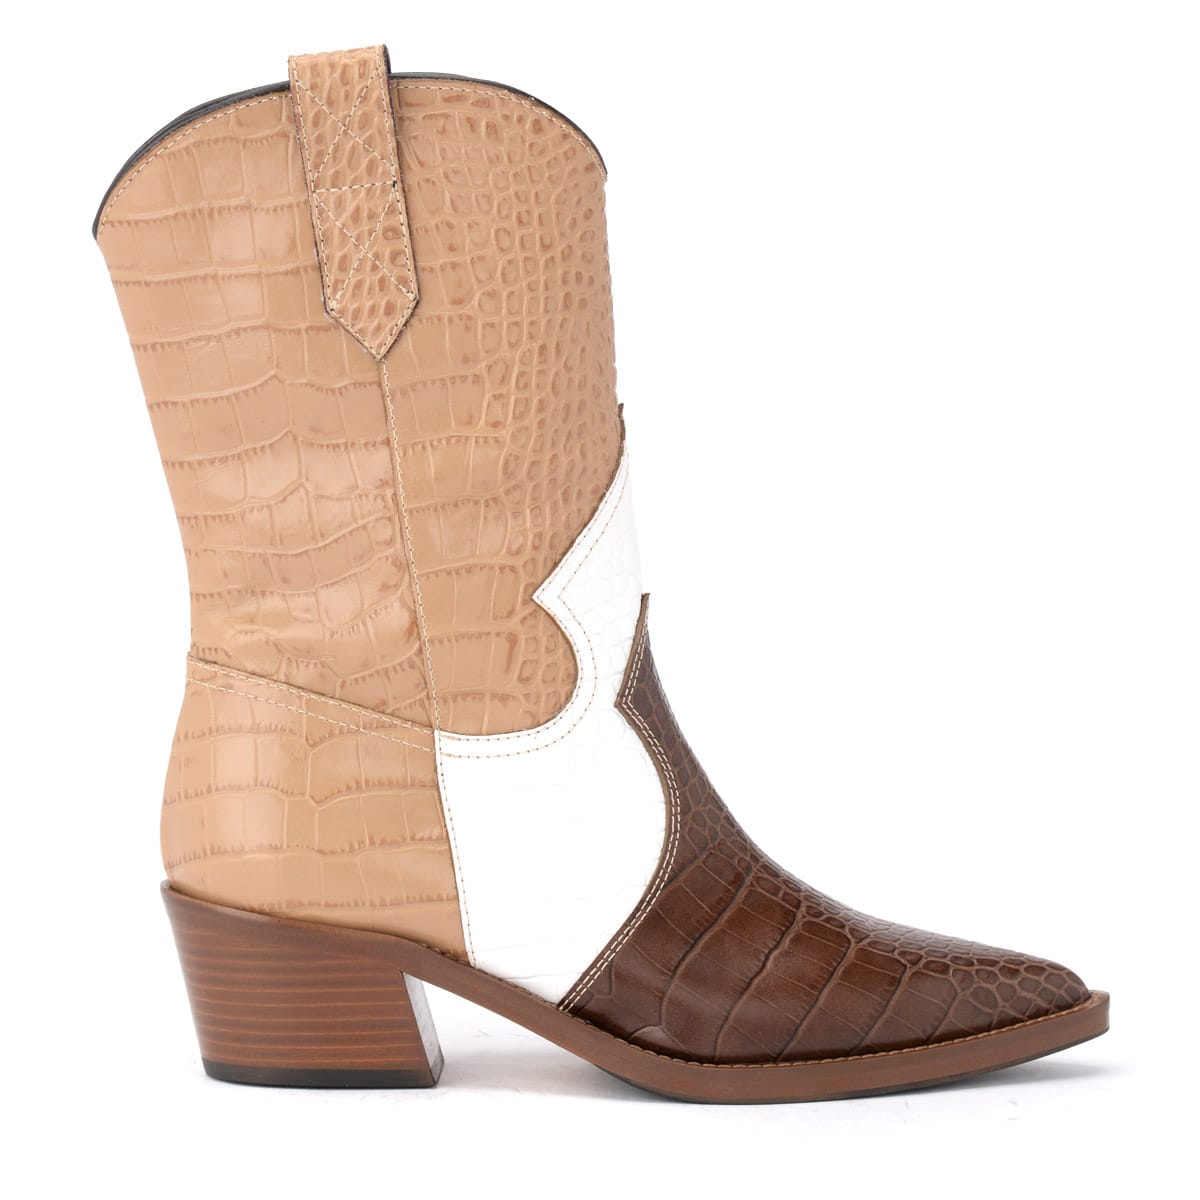 Via Roma 15 Texan Ankle Boot In Brown And White Crocodile Print Leather